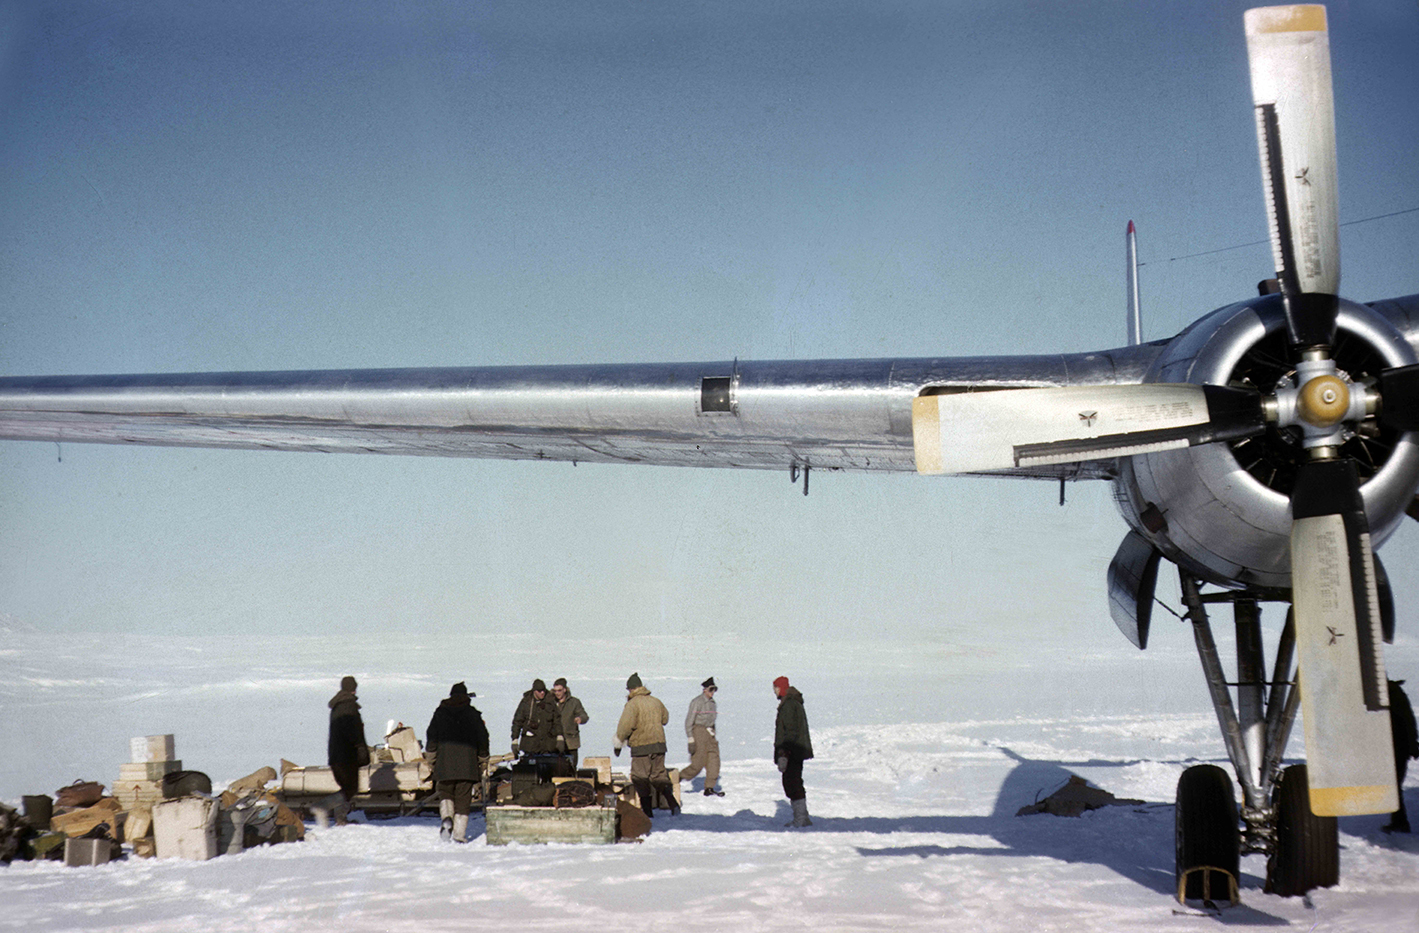 Defence Research and Development Canada (DRDC) has been conducting research at Alert and in the High Arctic for the past 60 years. Provided by Library and Archives Canada.